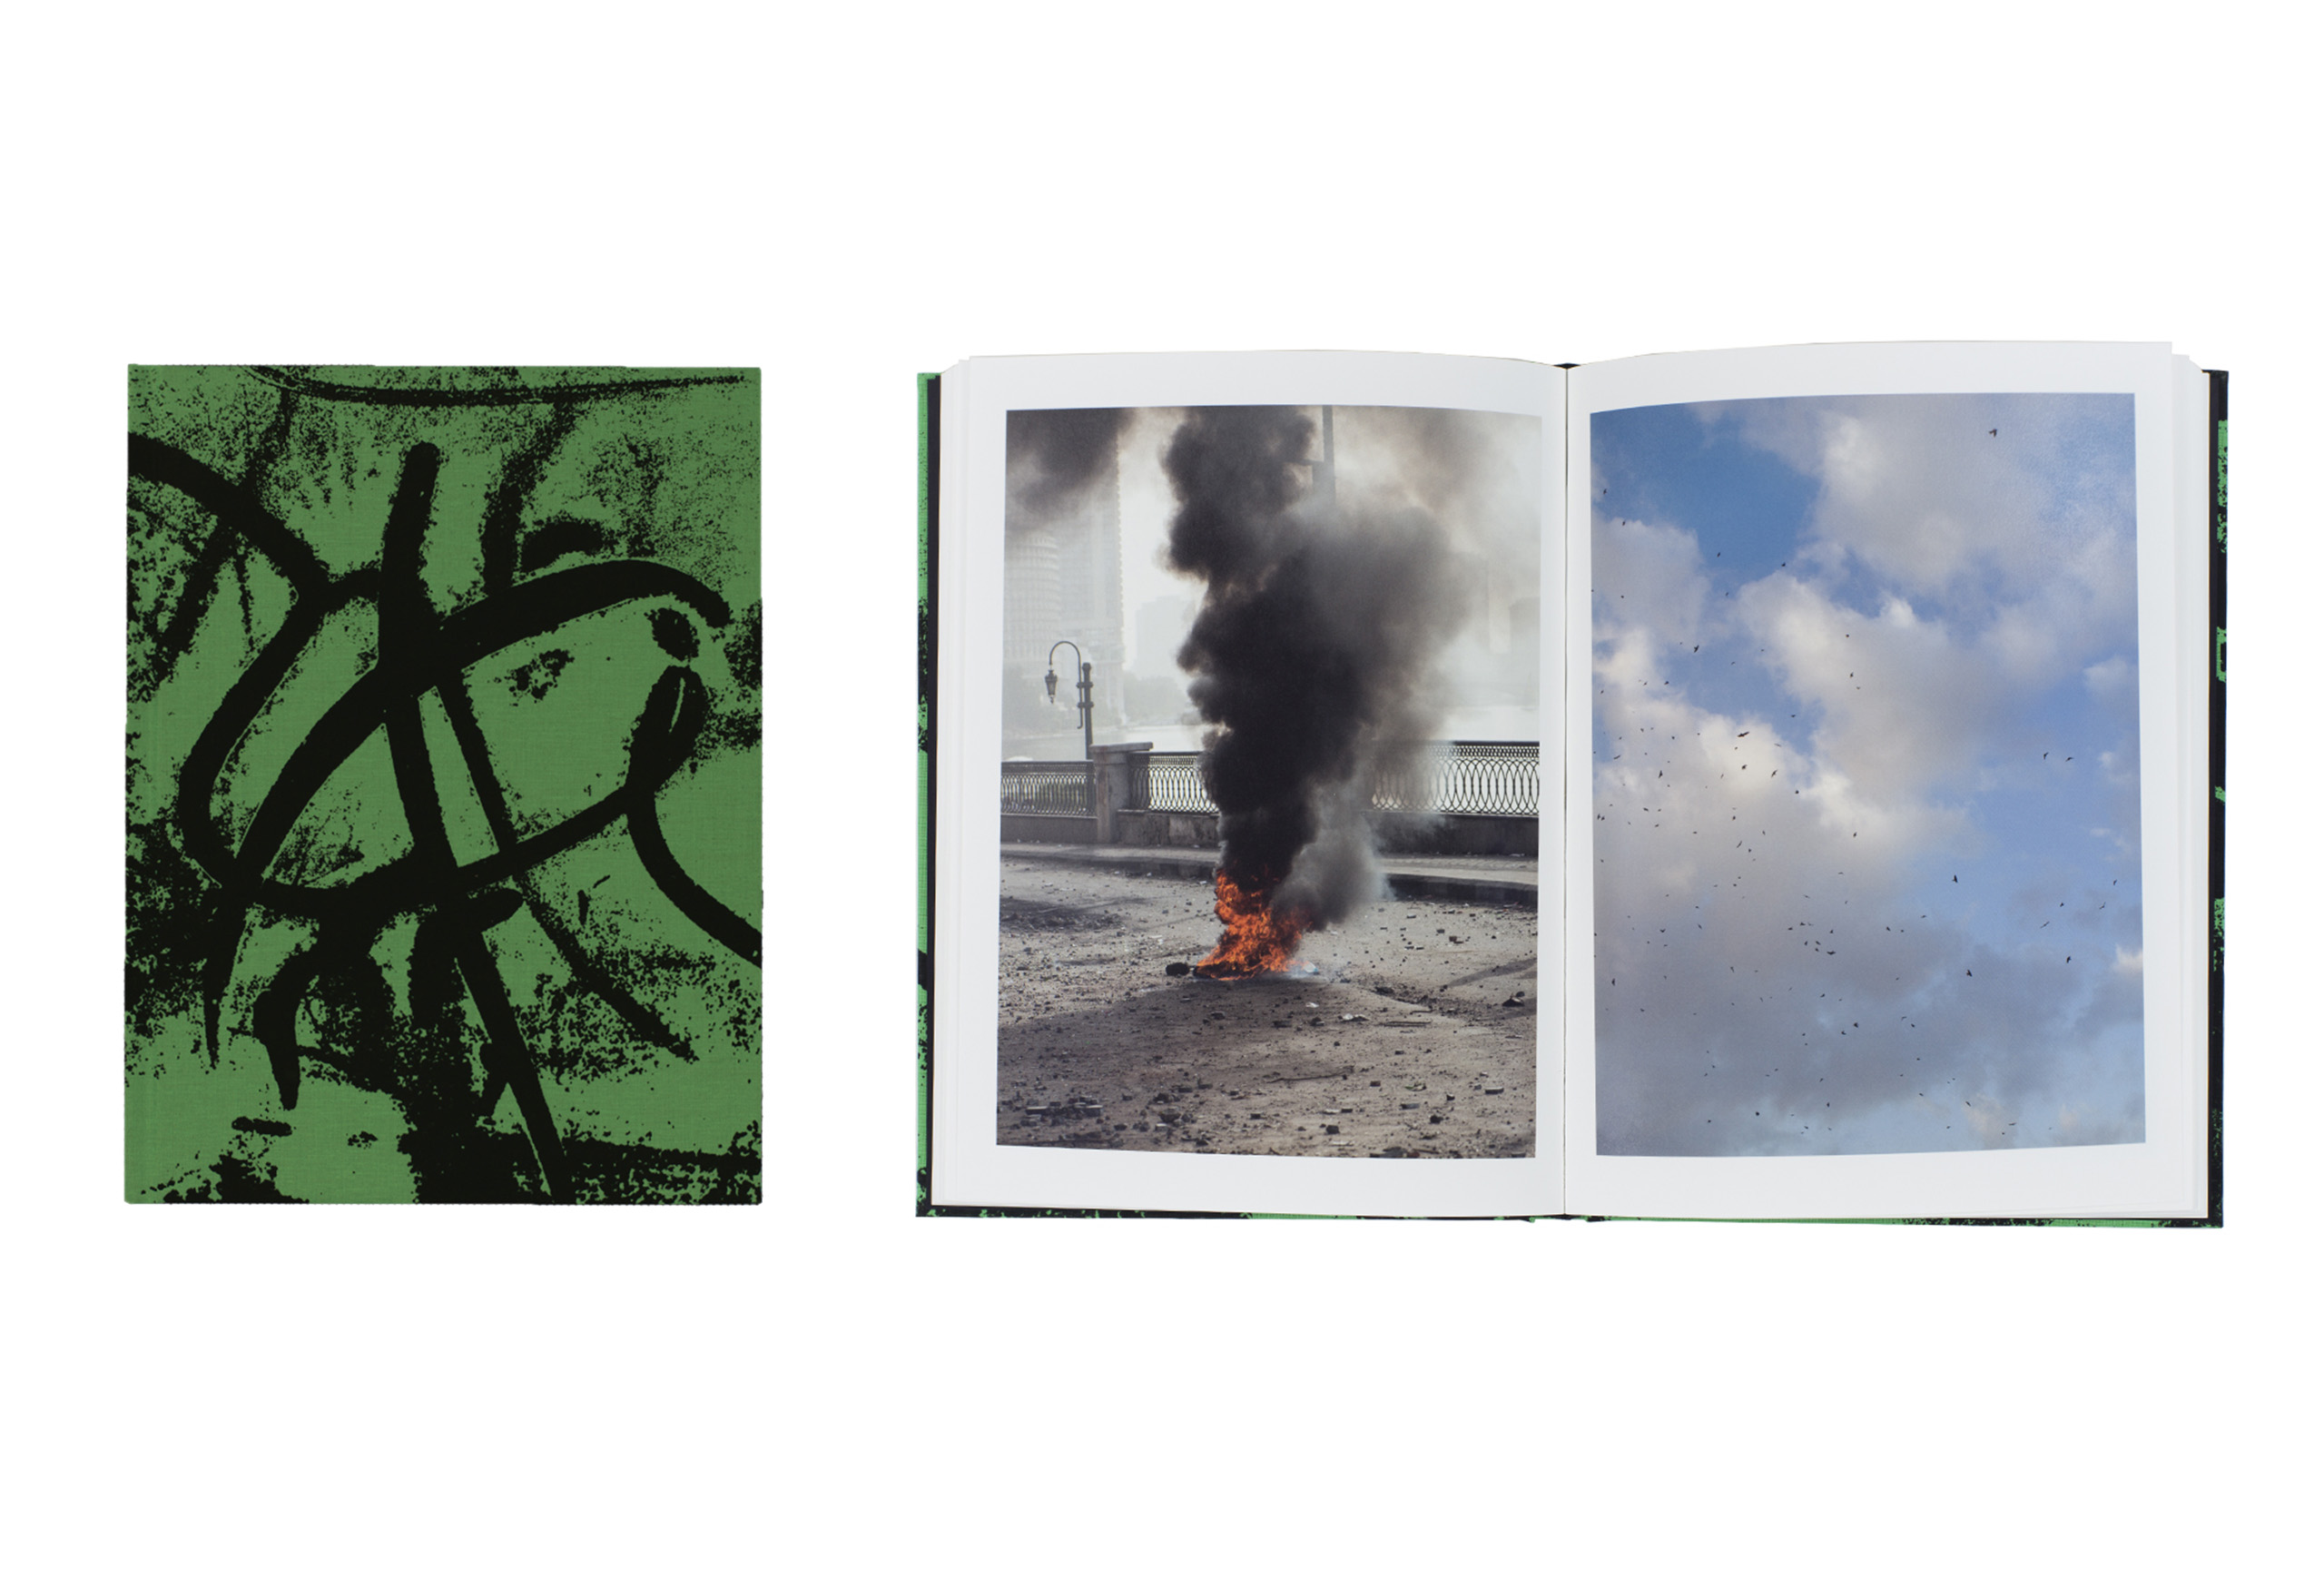 Fire in Cairo by Matthew Connors, published by SPBH Editions. Short-listed title for First PhotoBook.